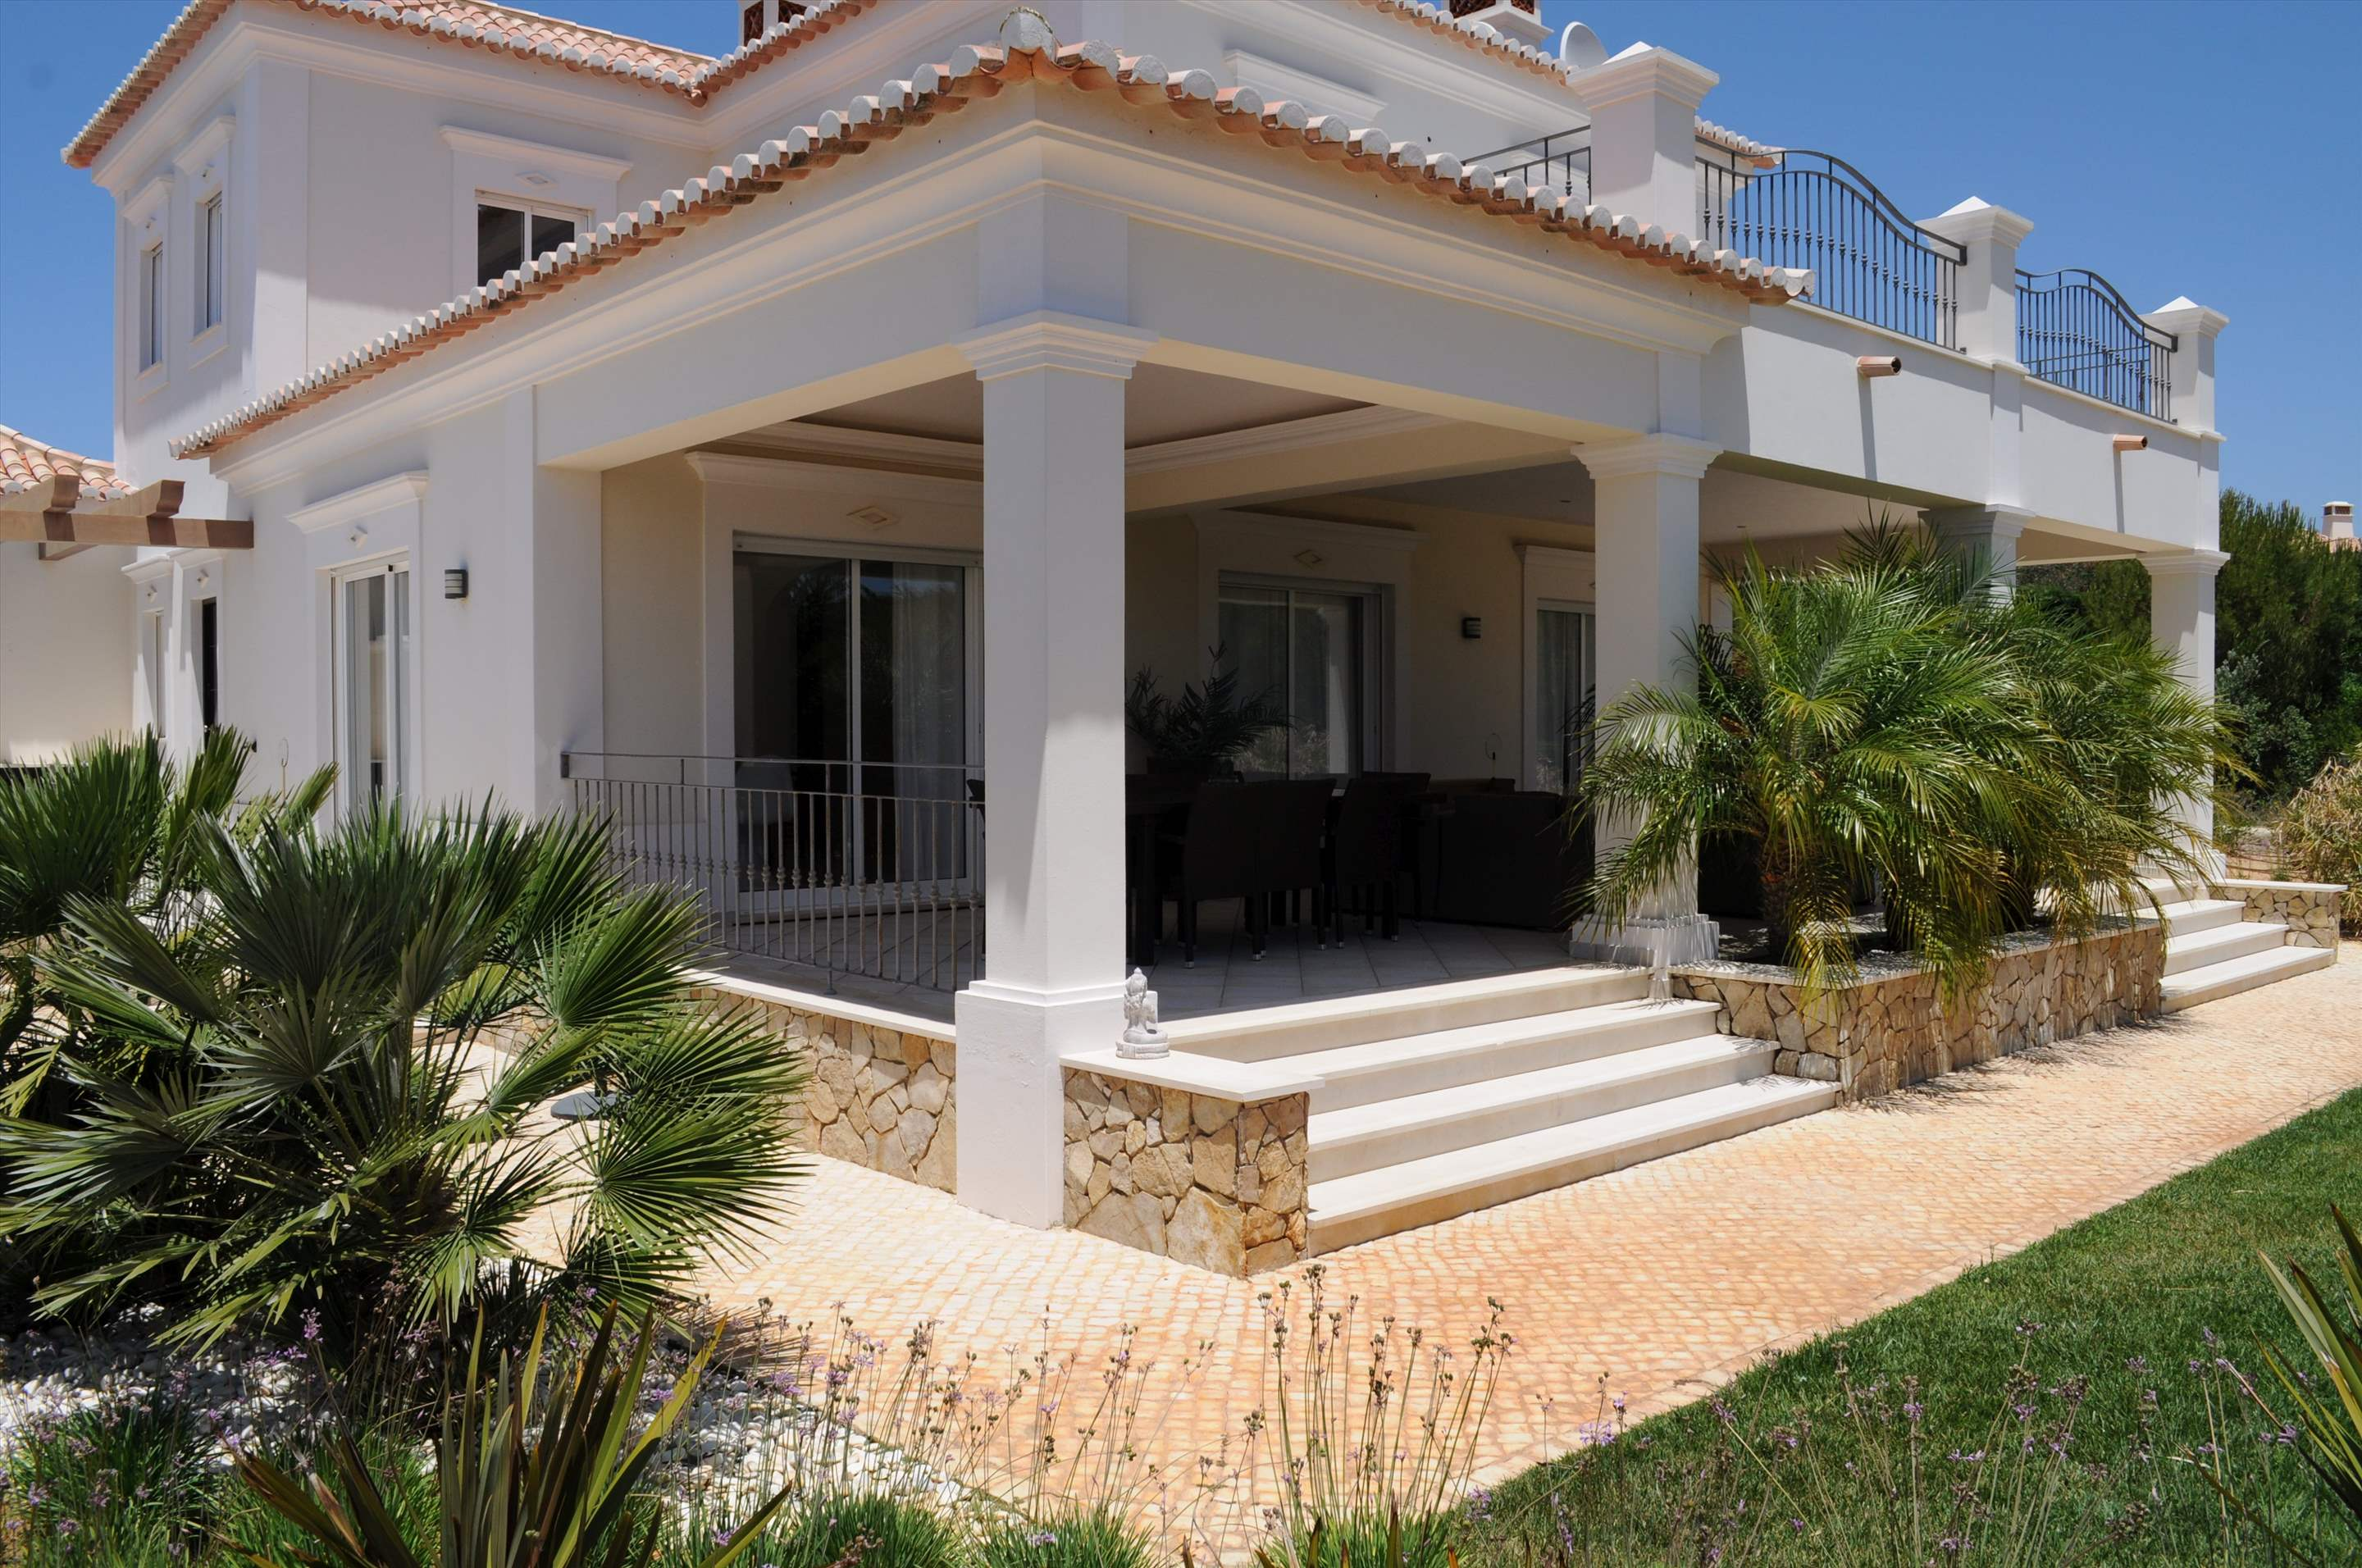 Martinhal Luxury Villa No.18, 5 bedroom villa in Martinhal Sagres, Algarve Photo #9